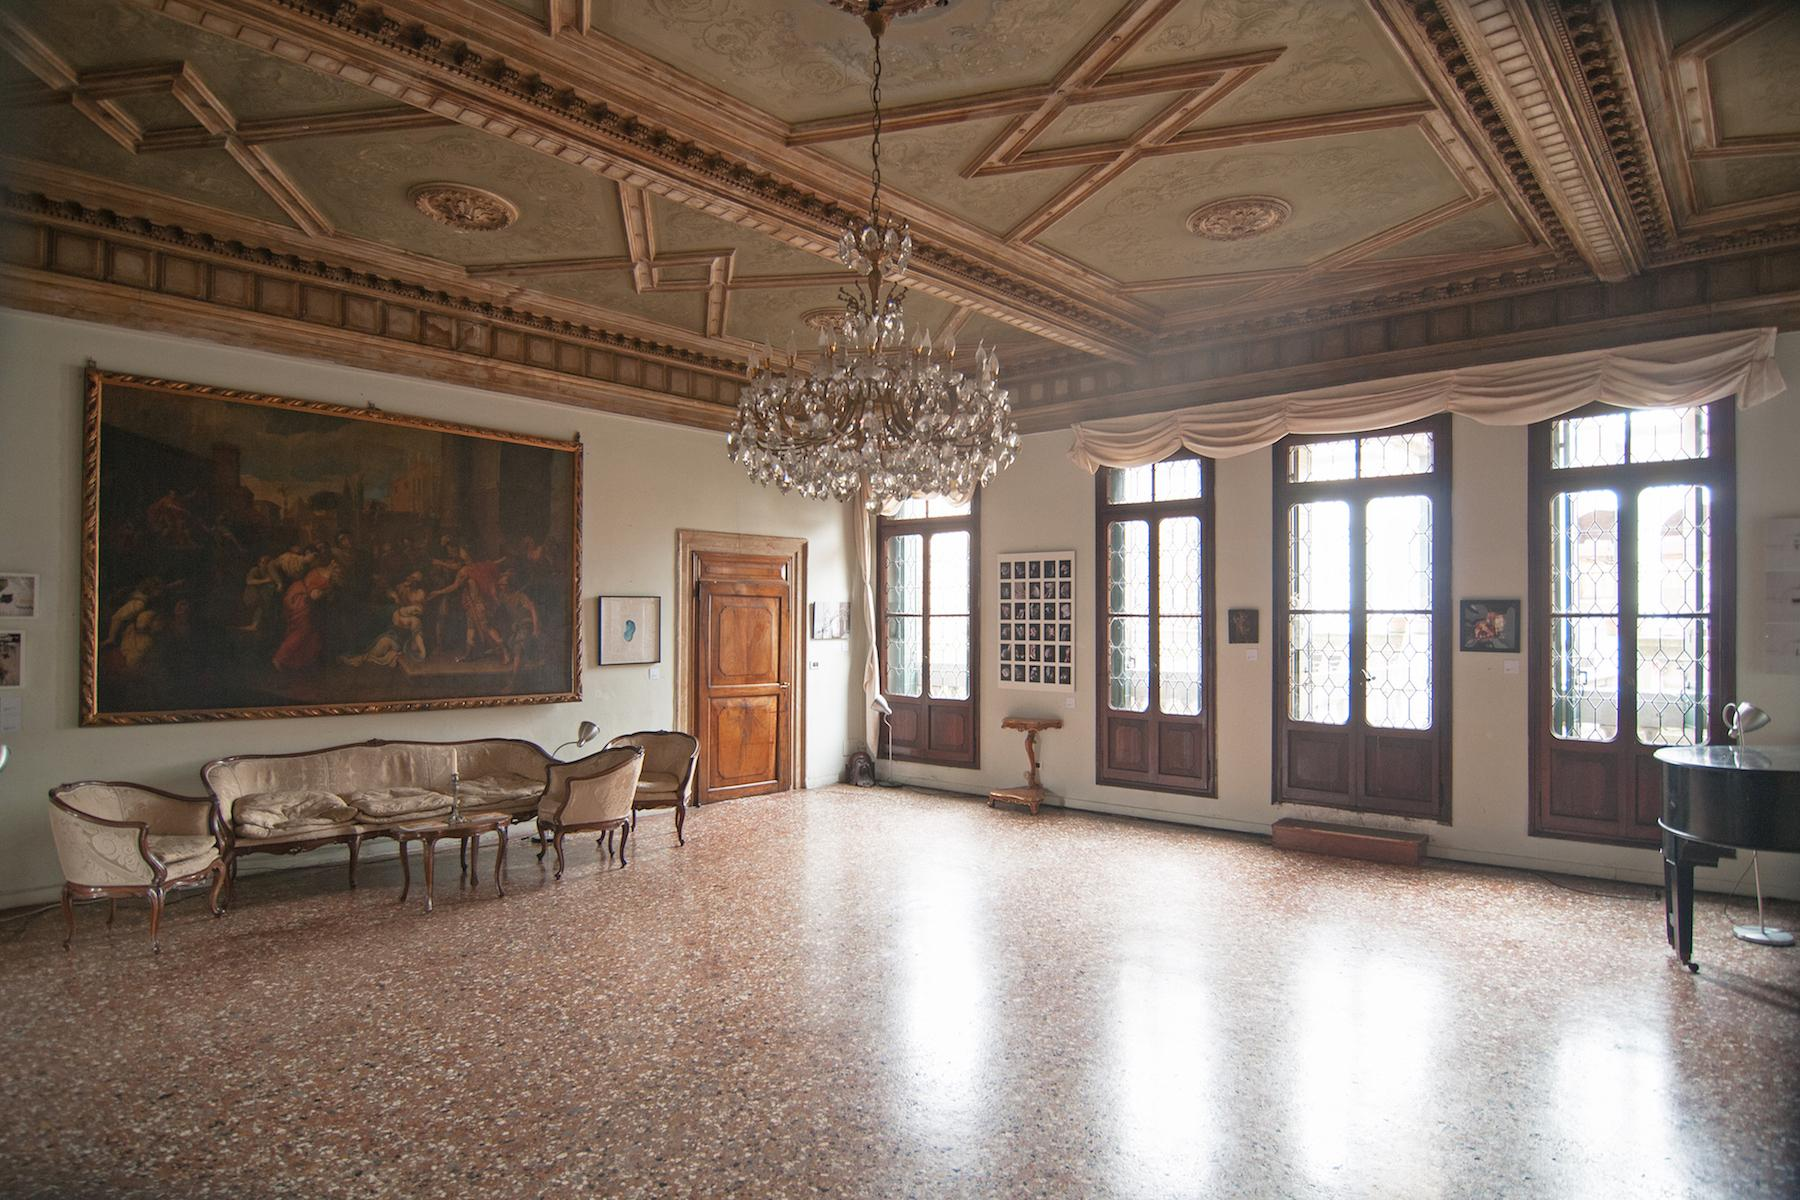 16th Century Palazzetto with permissions for a 23 bedroom hotel - 8